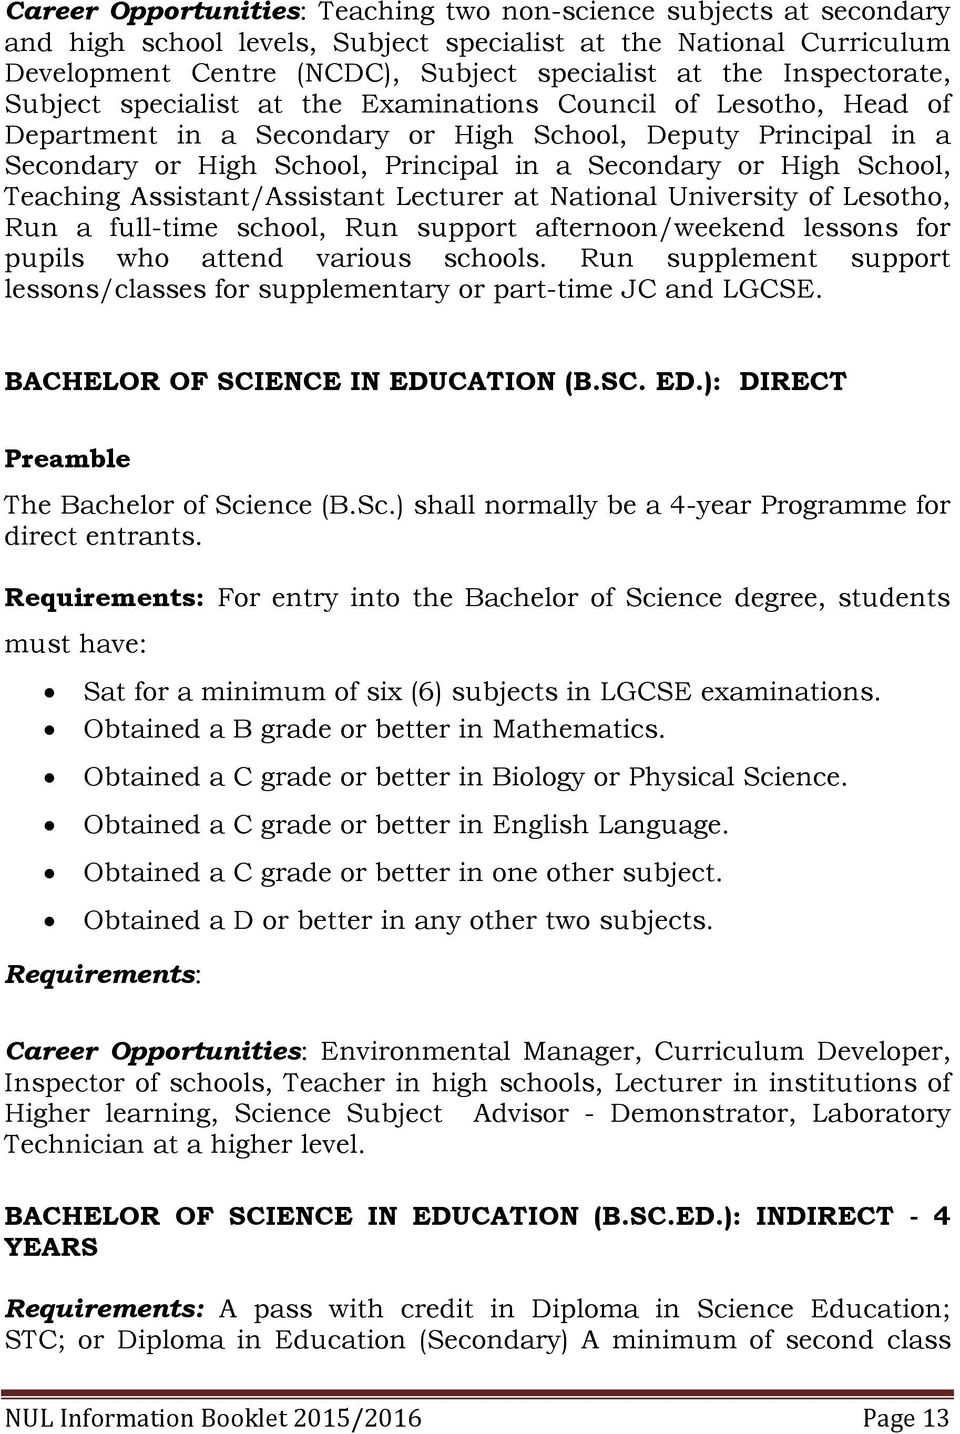 High School, Teaching Assistant/Assistant Lecturer at National University of Lesotho, Run a full-time school, Run support afternoon/weekend lessons for pupils who attend various schools.